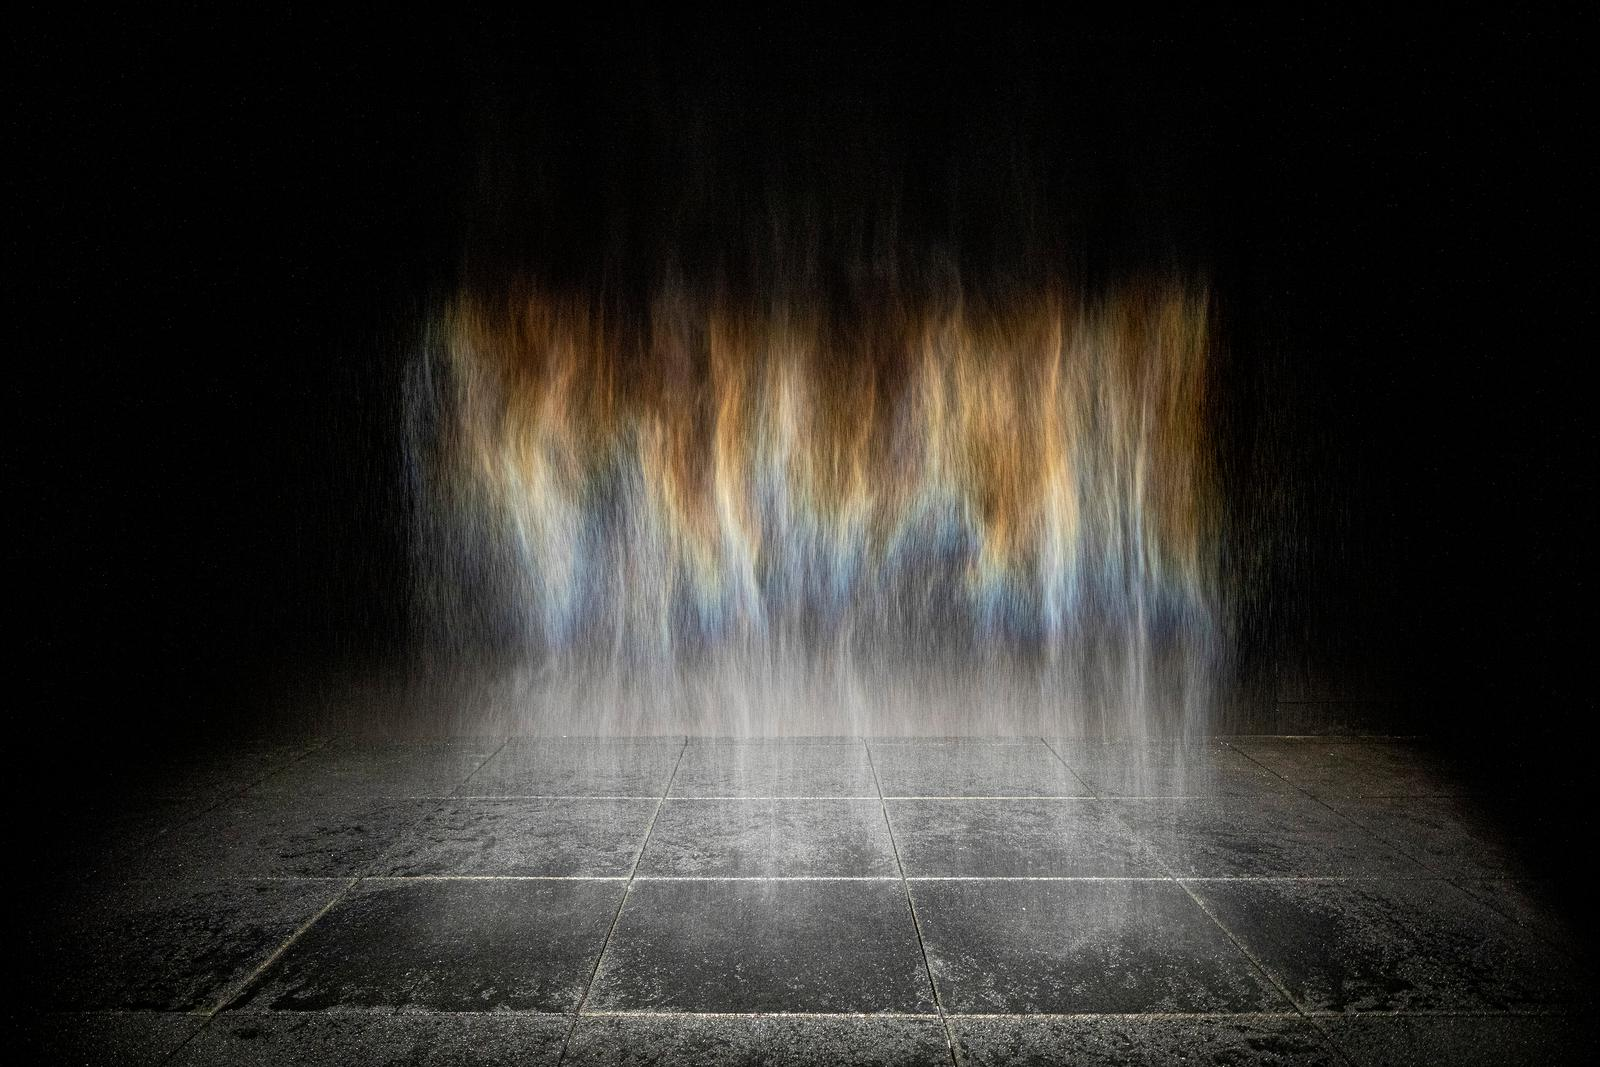 Beauty Artwork Studio Olafur Eliasson